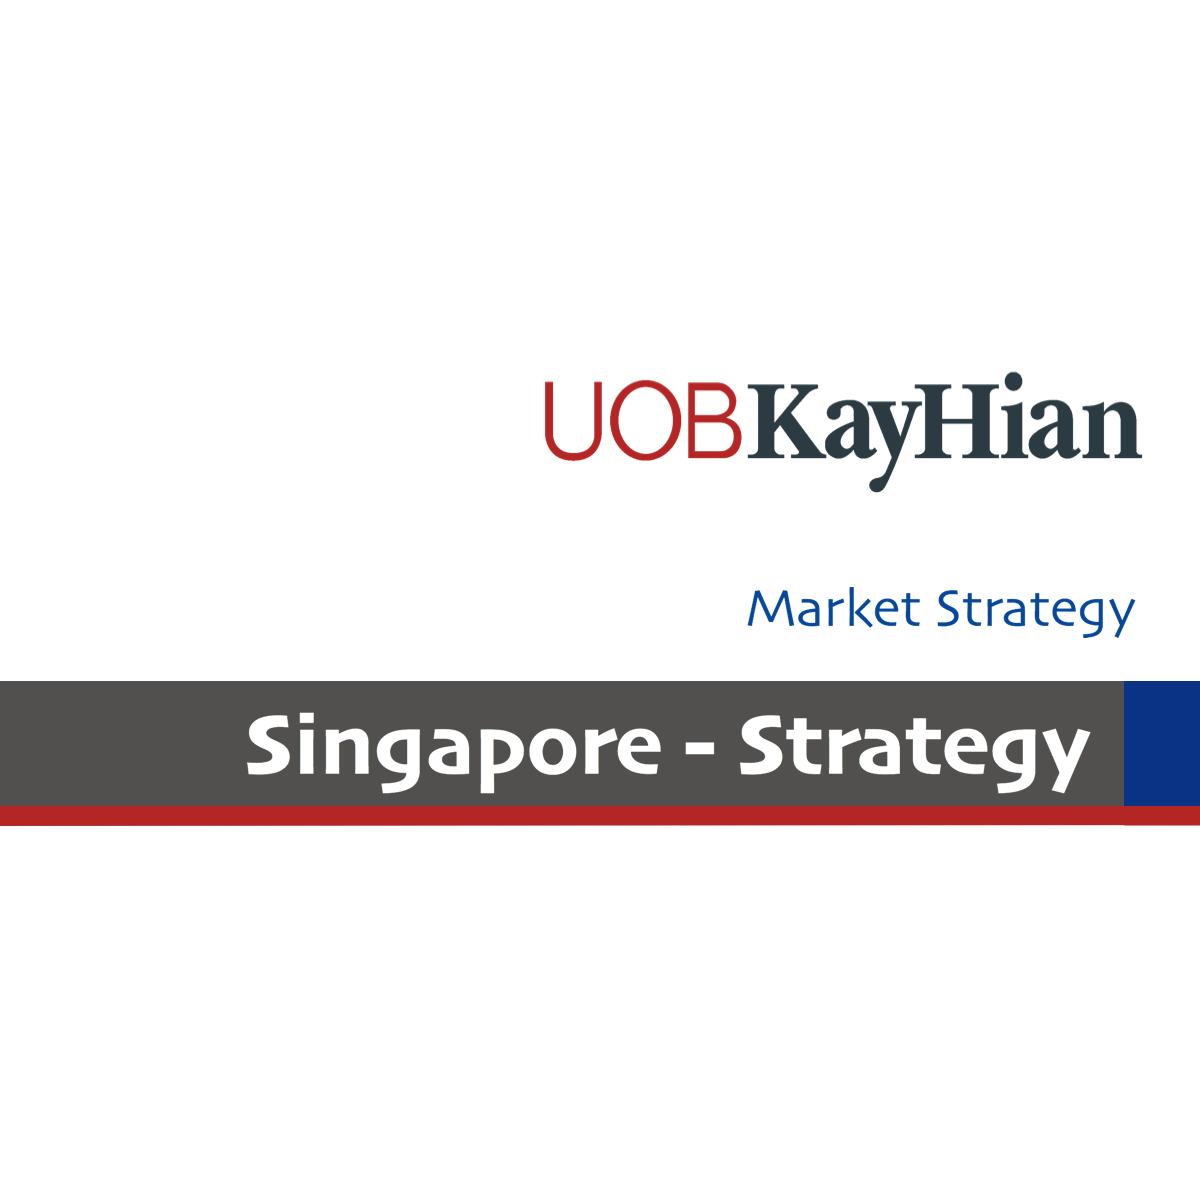 Singapore Strategy - UOB Kay Hian 2017-11-09: Stretching Valuations On Rising Growth